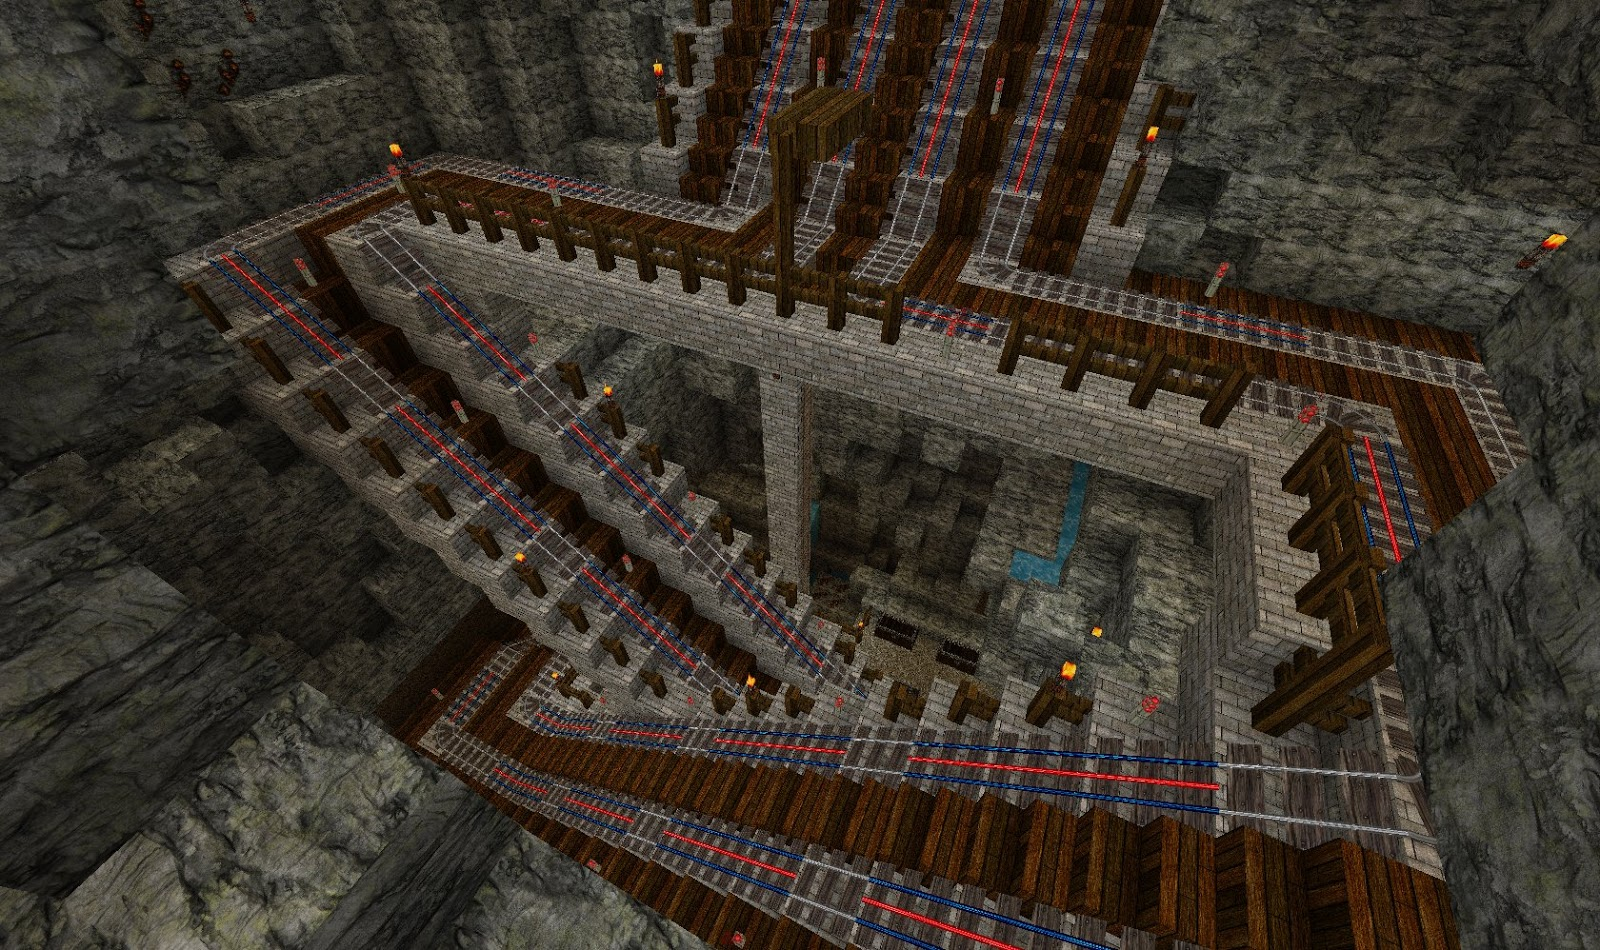 JD's Gaming Blog: Minecraft Creations: The Brick Mansion Chapter 3, Less think more work